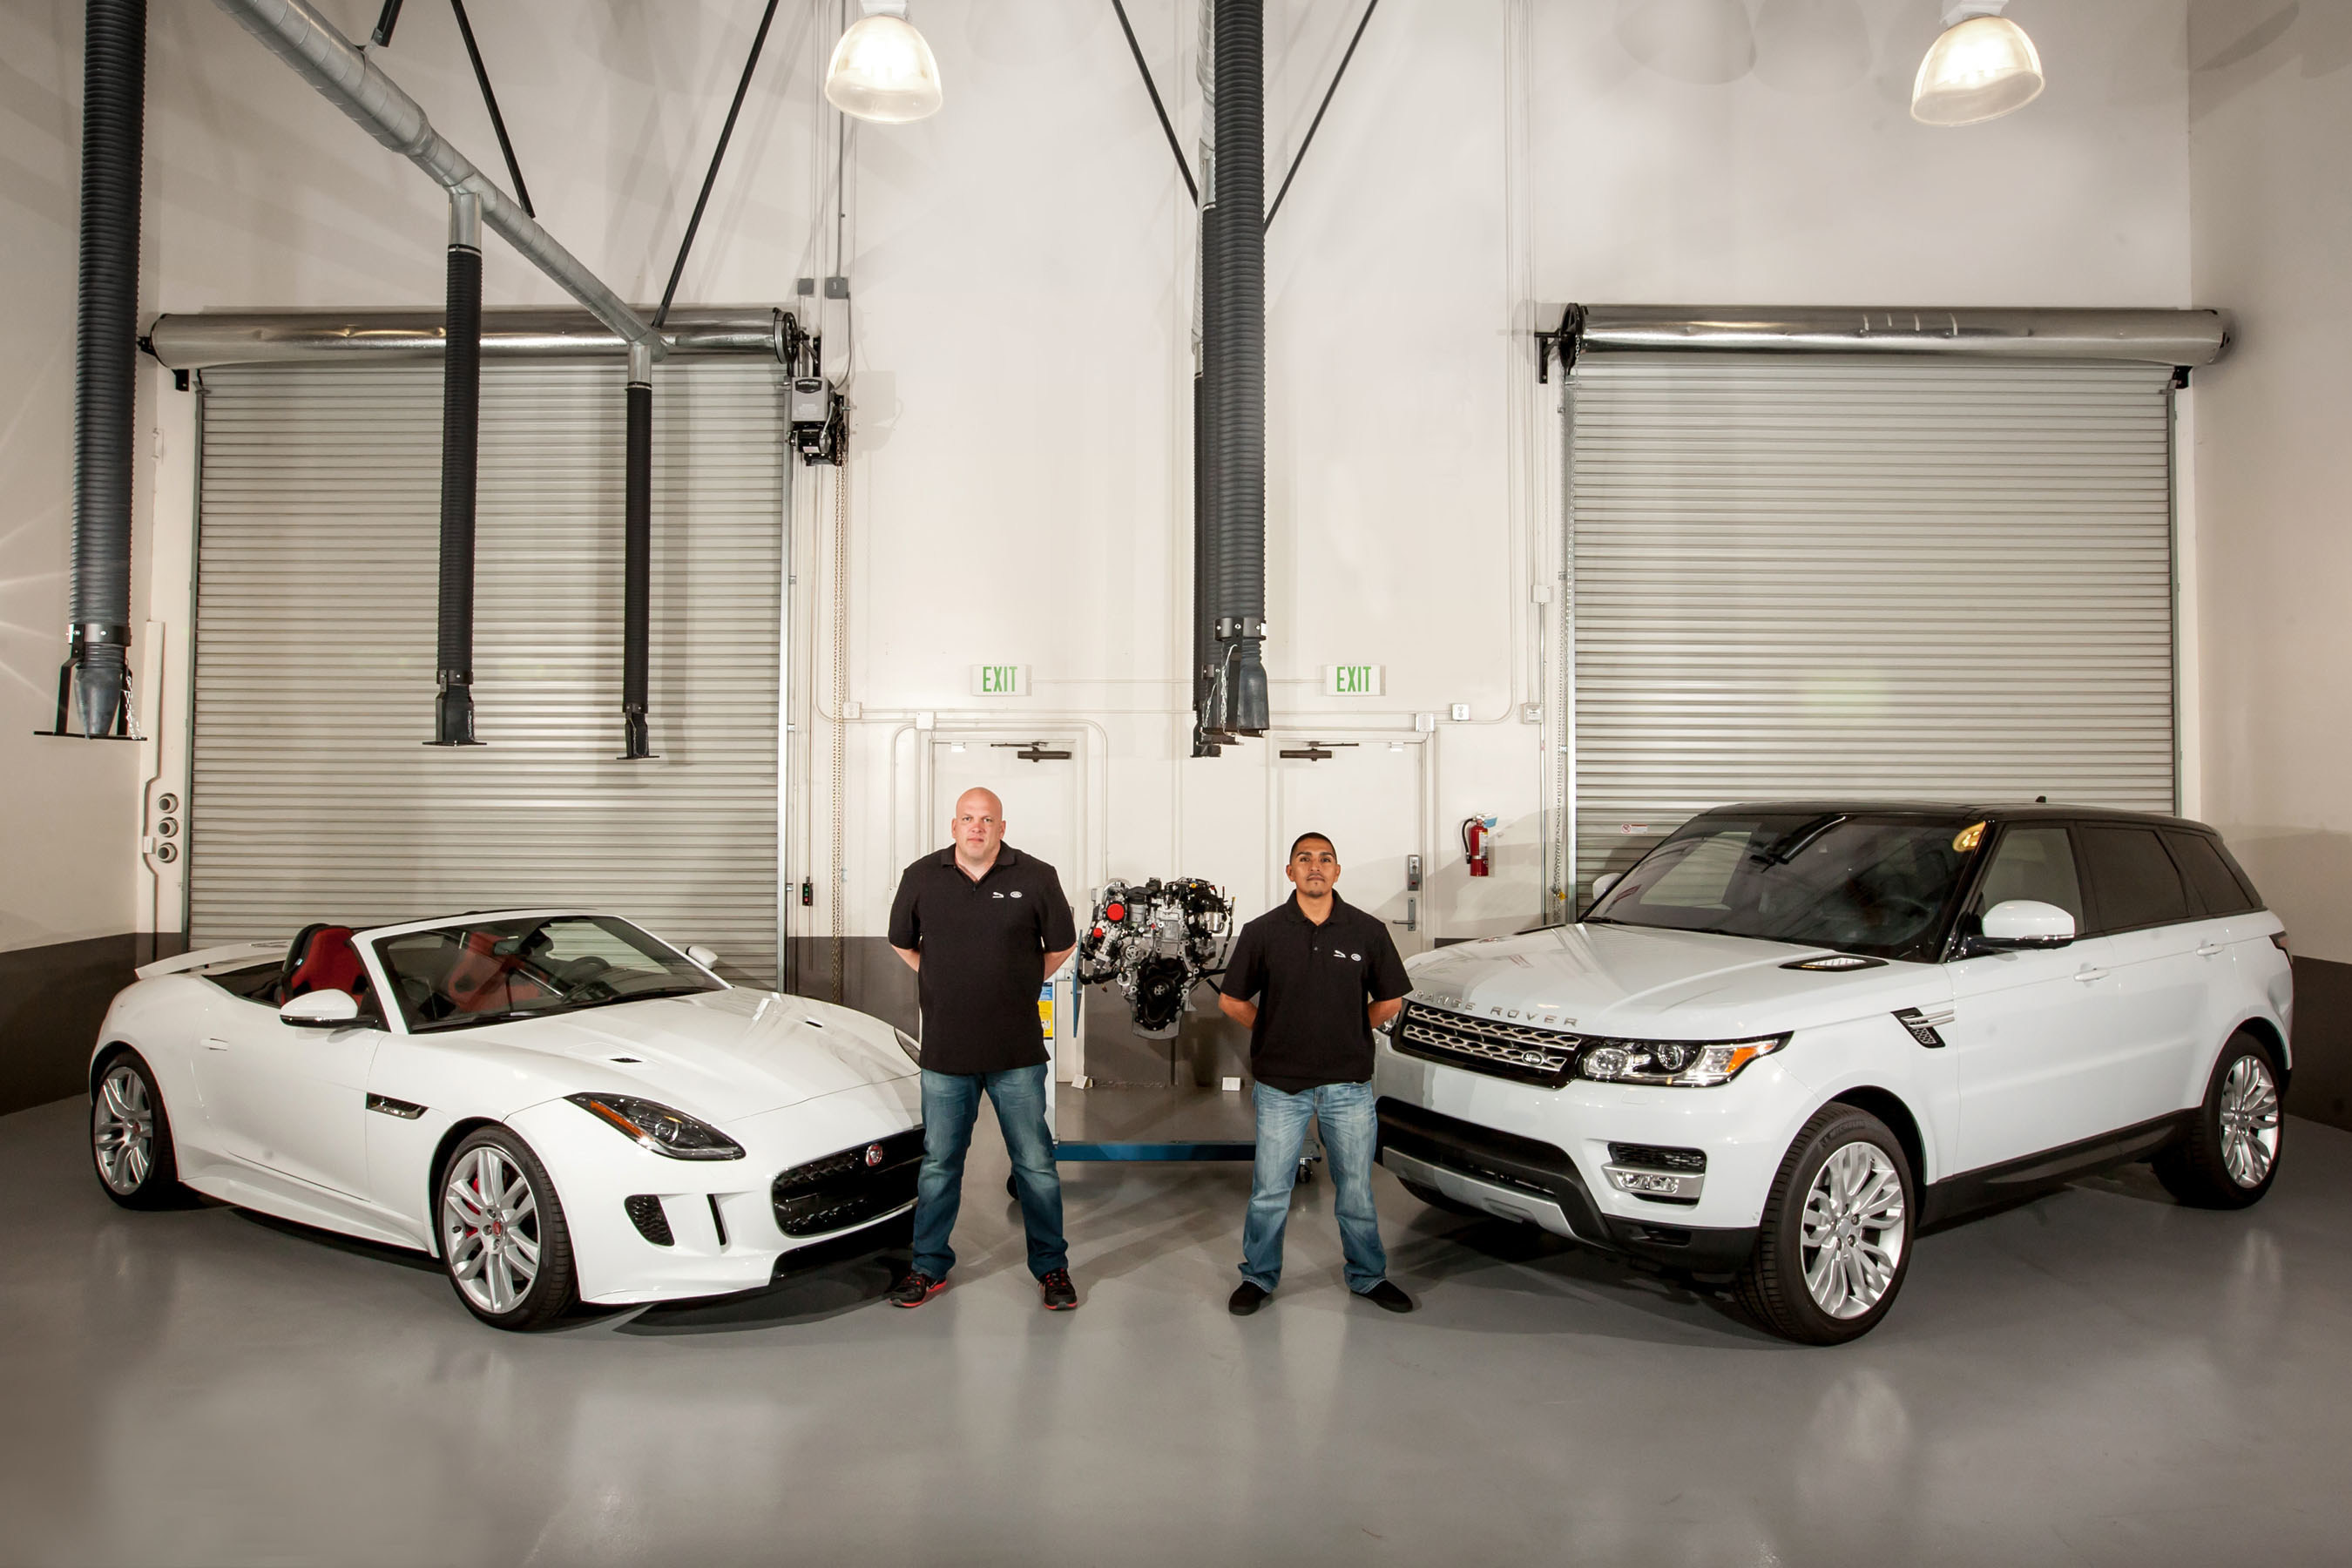 Recently hired Veteran technicians, Randy Werner (L) and Joshua Grinie (R), begin their training as part of the new Jaguar Land Rover U.S. Retail Network Veterans Employment Program in collaboration with CALIBRE Systems, Inc.